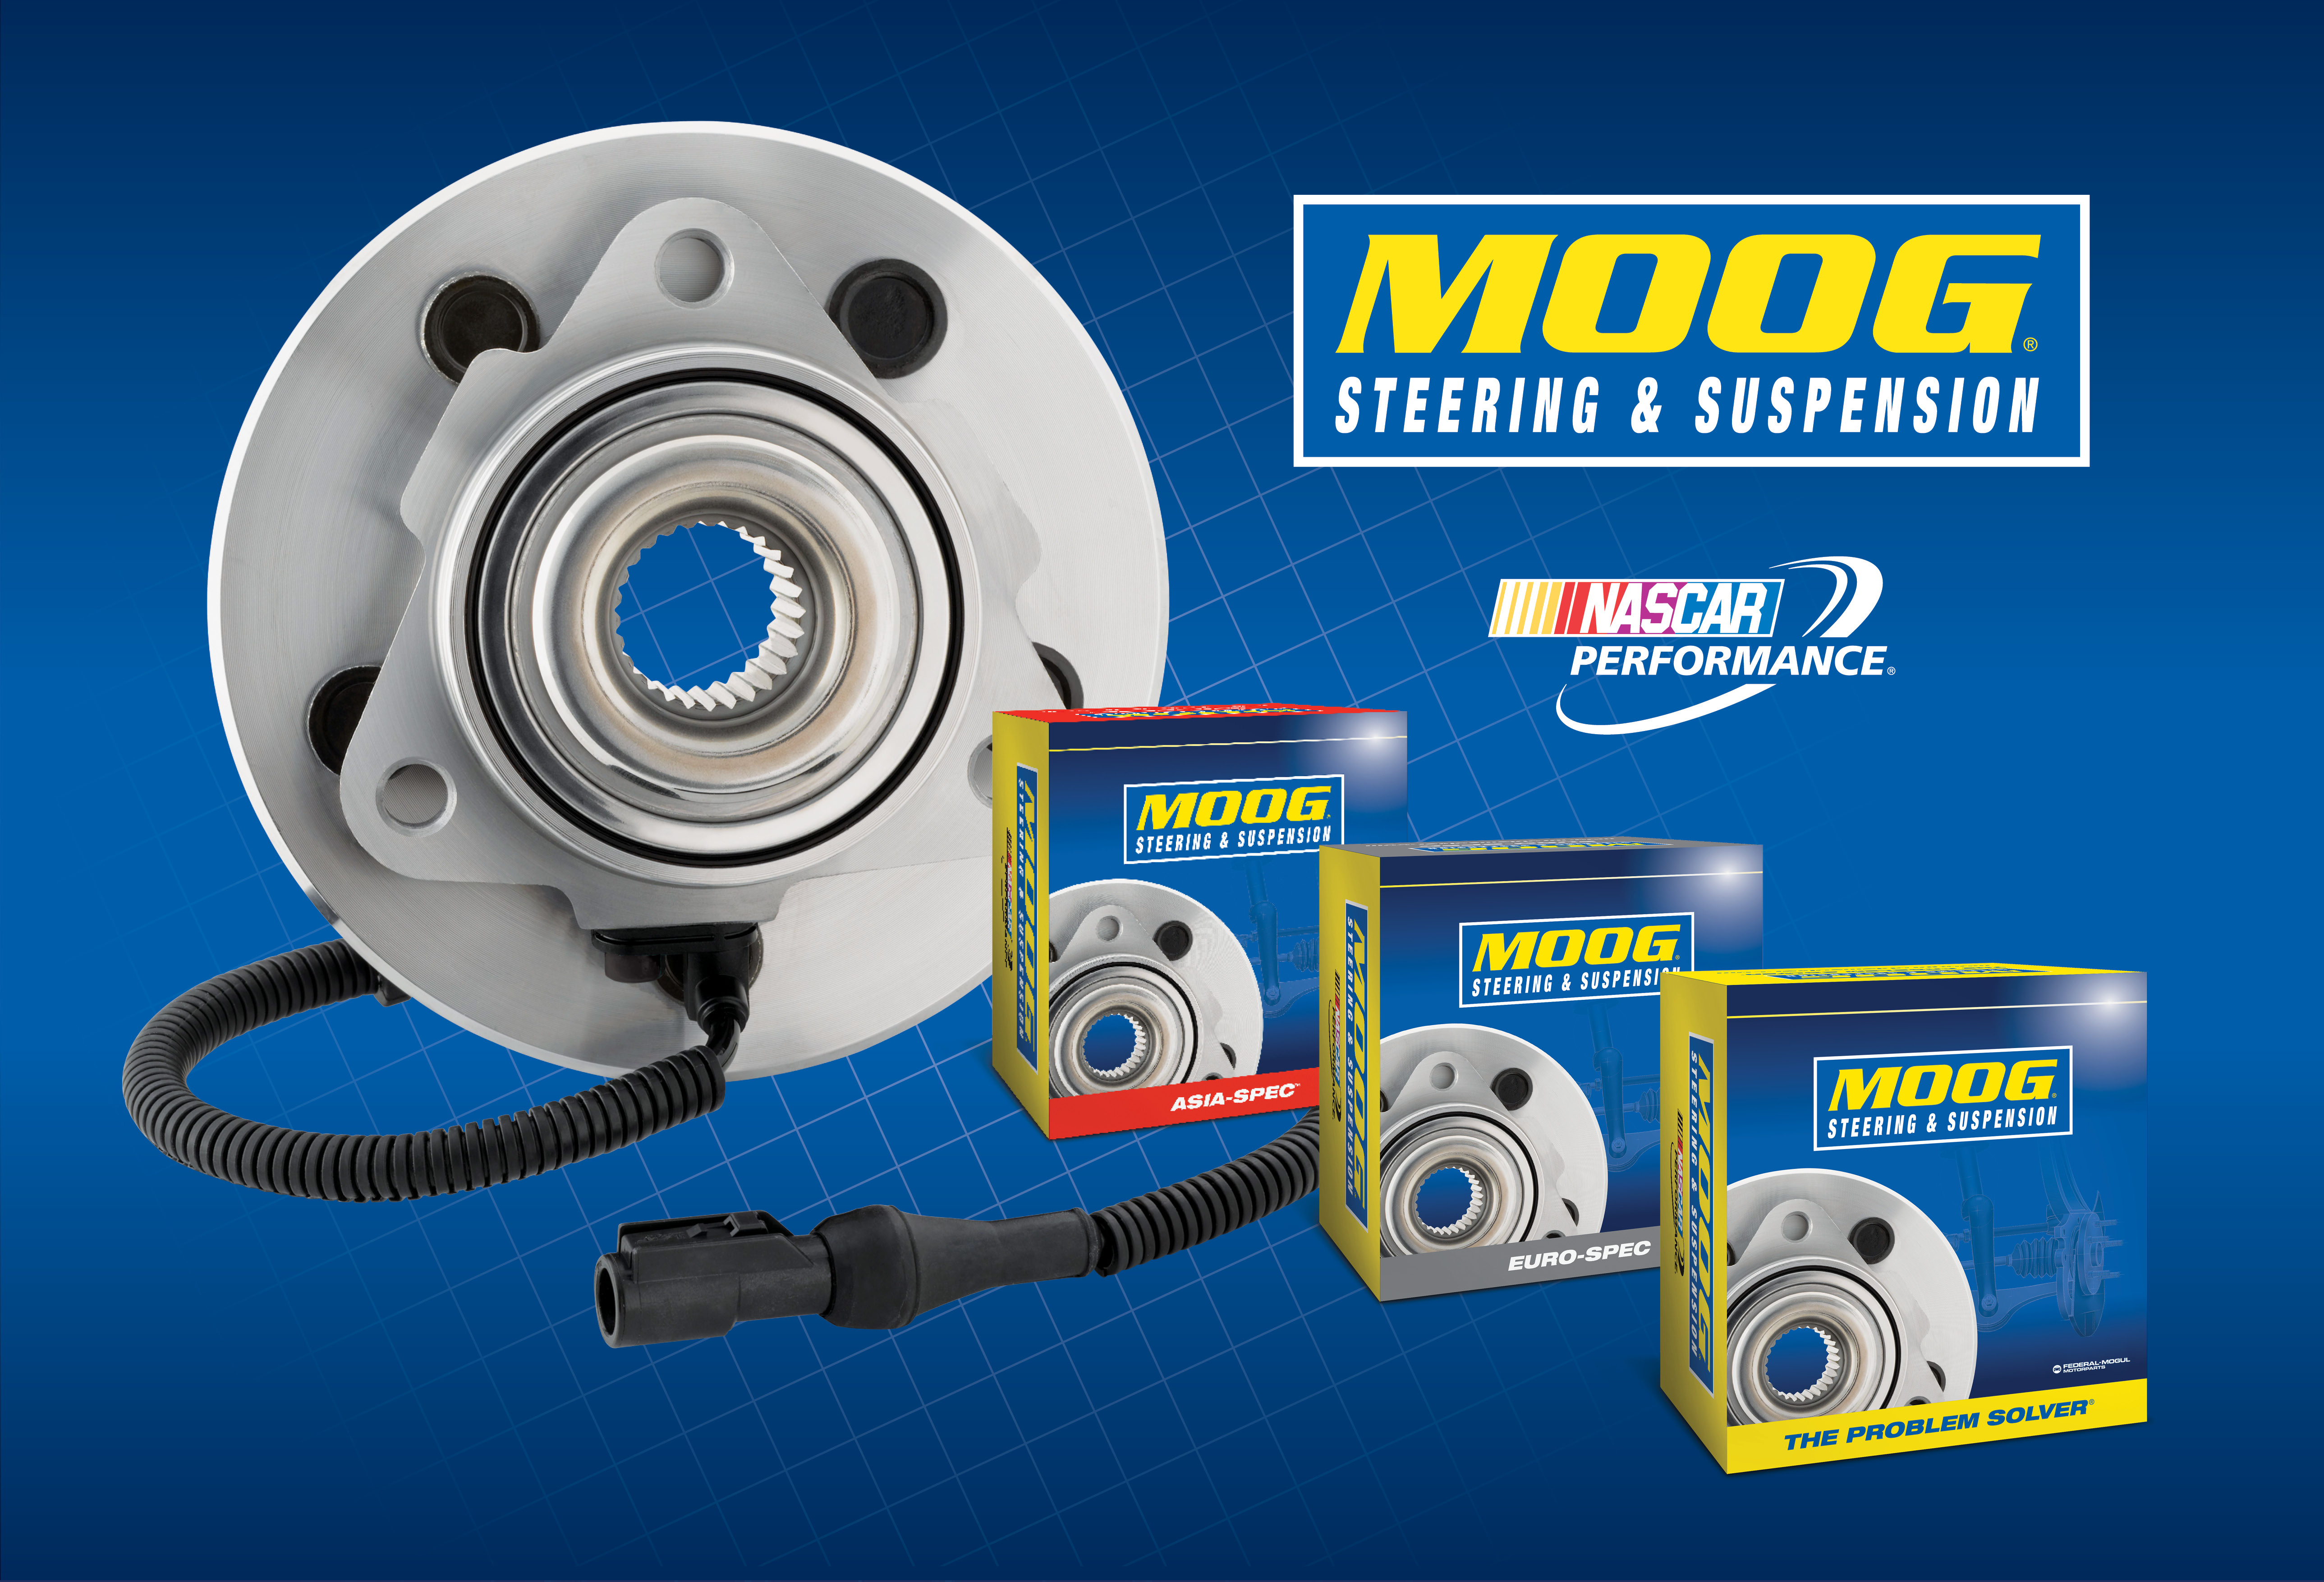 Product solutions fme360 page 2 federal mogul motorparts industry leading moog steering and suspension brand has introduced a complete strut assembly control arm assembly and several sciox Gallery